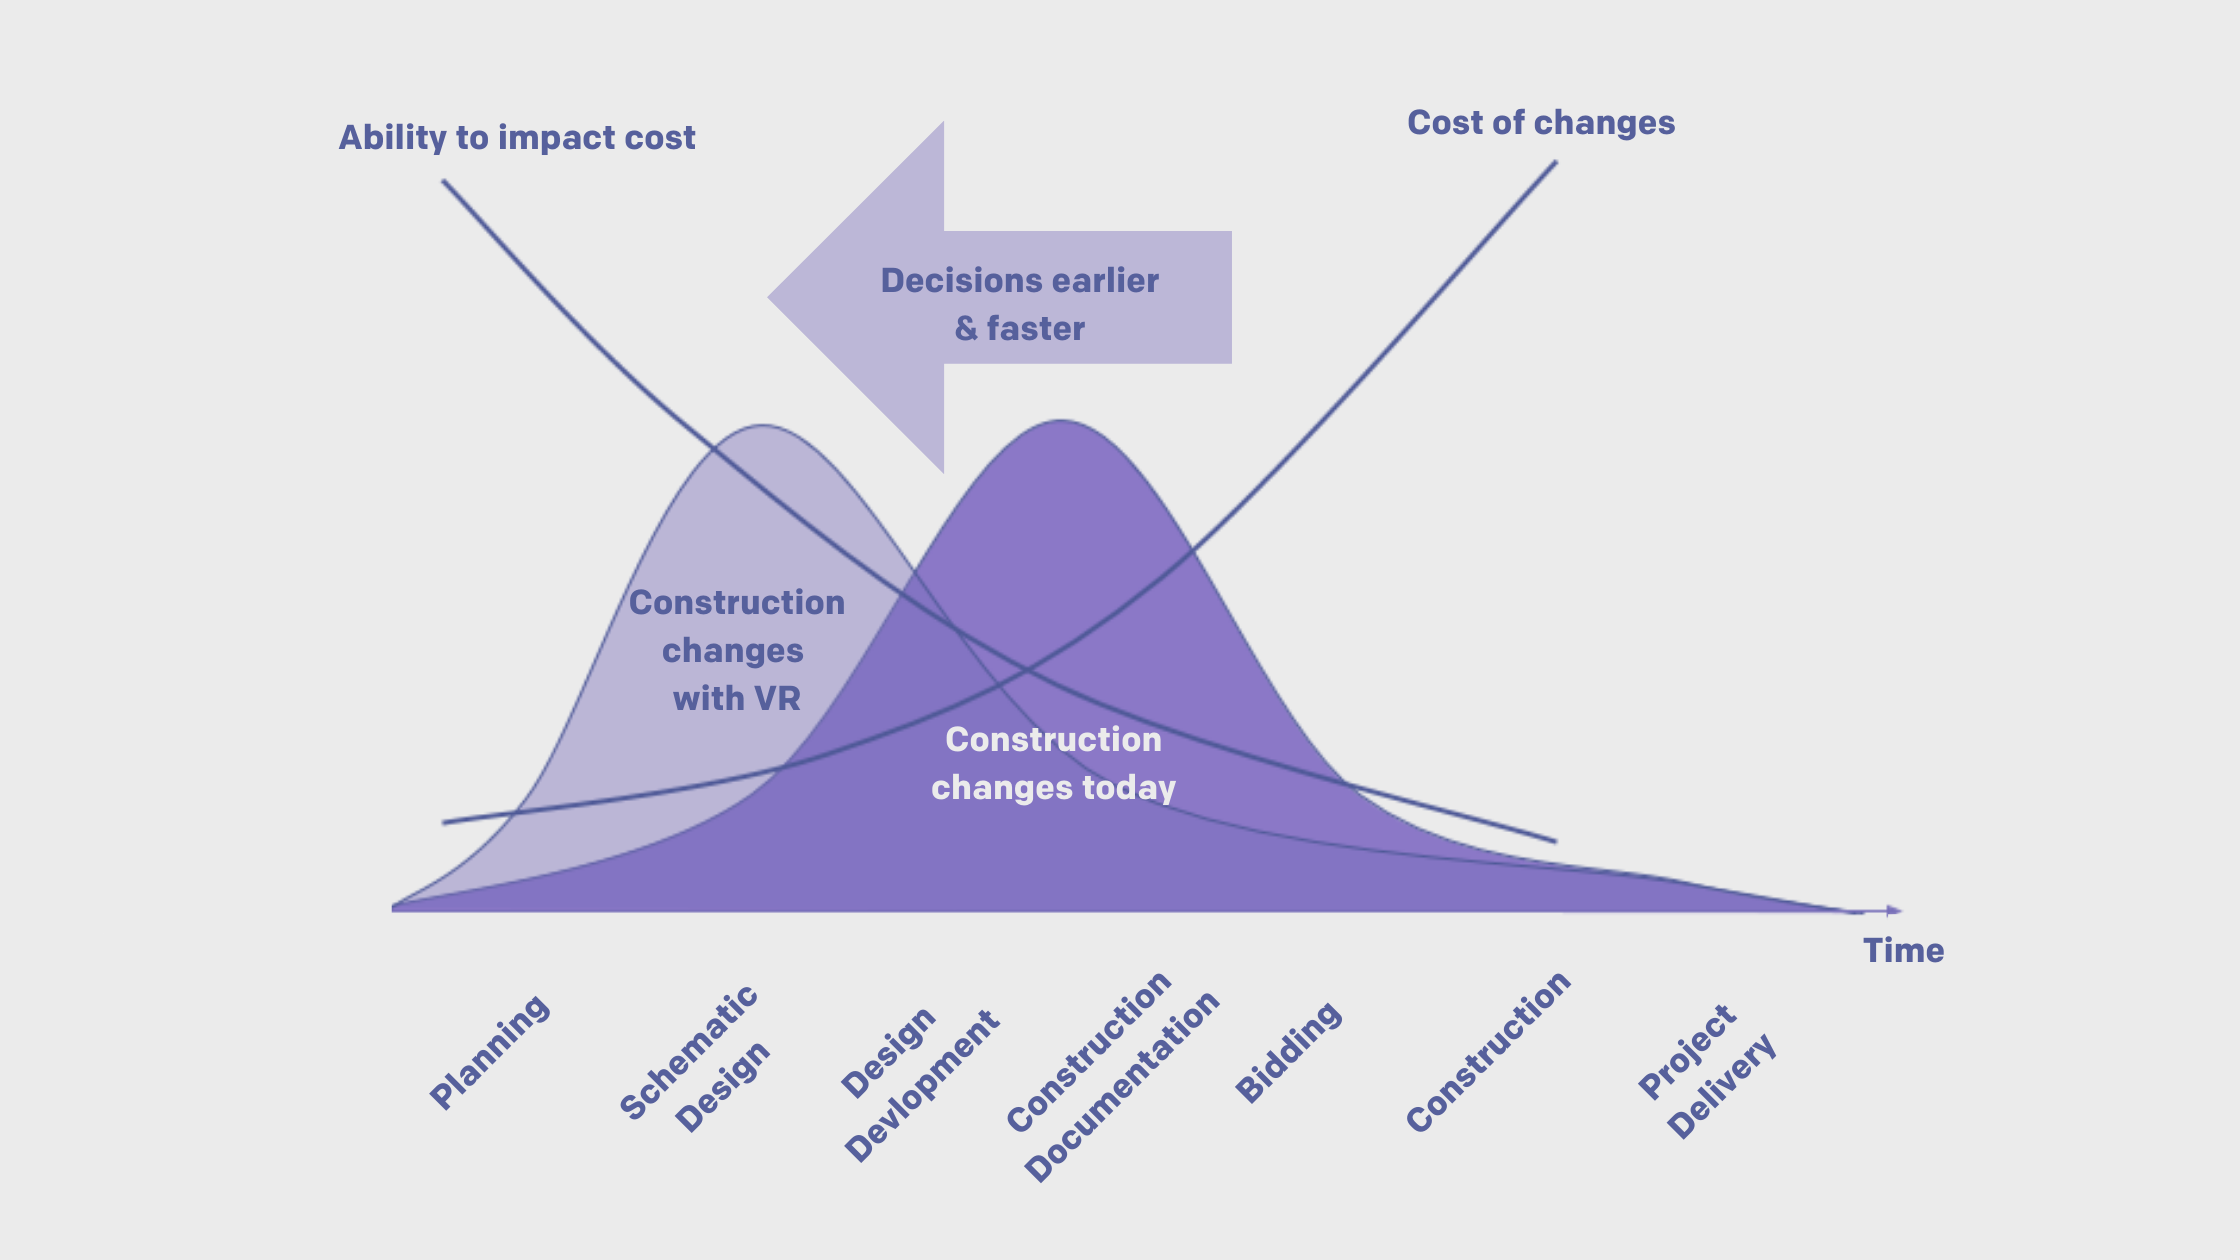 Earlier Decisions Graphic